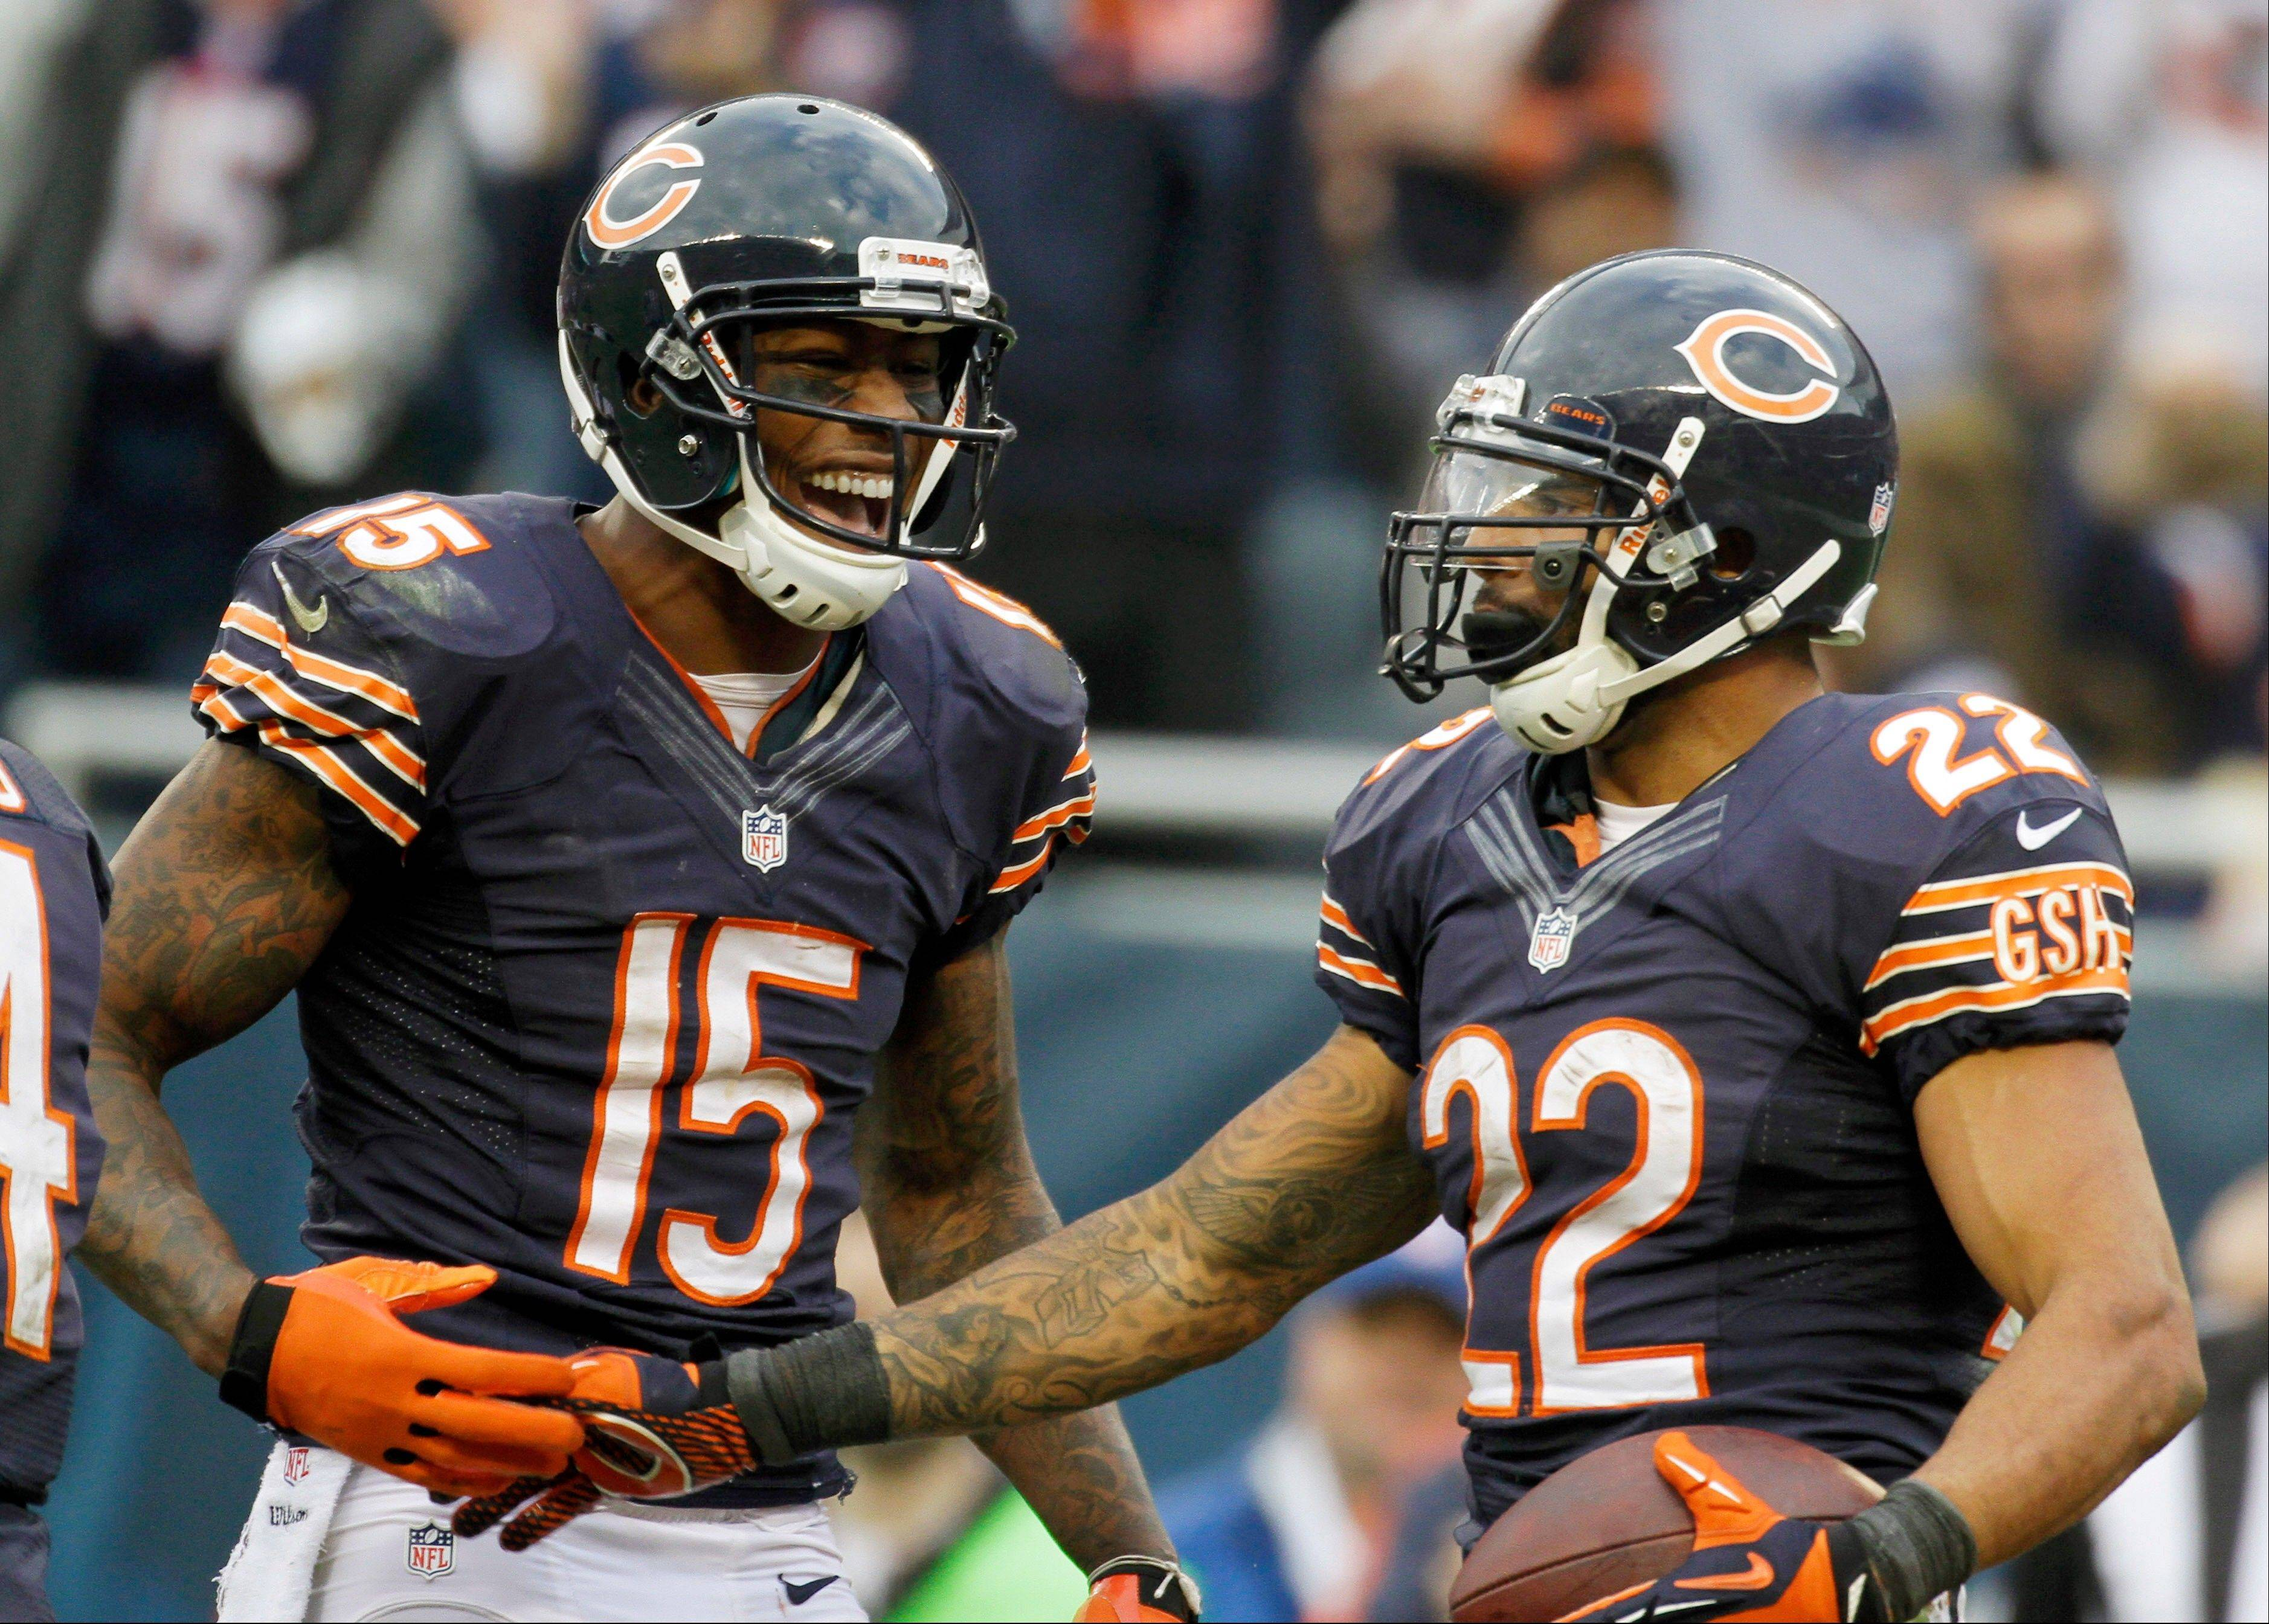 If the Green Bay Packers decide to double team him on Sunday, Bears wide receiver Brandon Marshall says he has confidence that Matt Forte (22) and receivers Alshon Jeffery and Devin Hester can step up and help the Bears' offense.